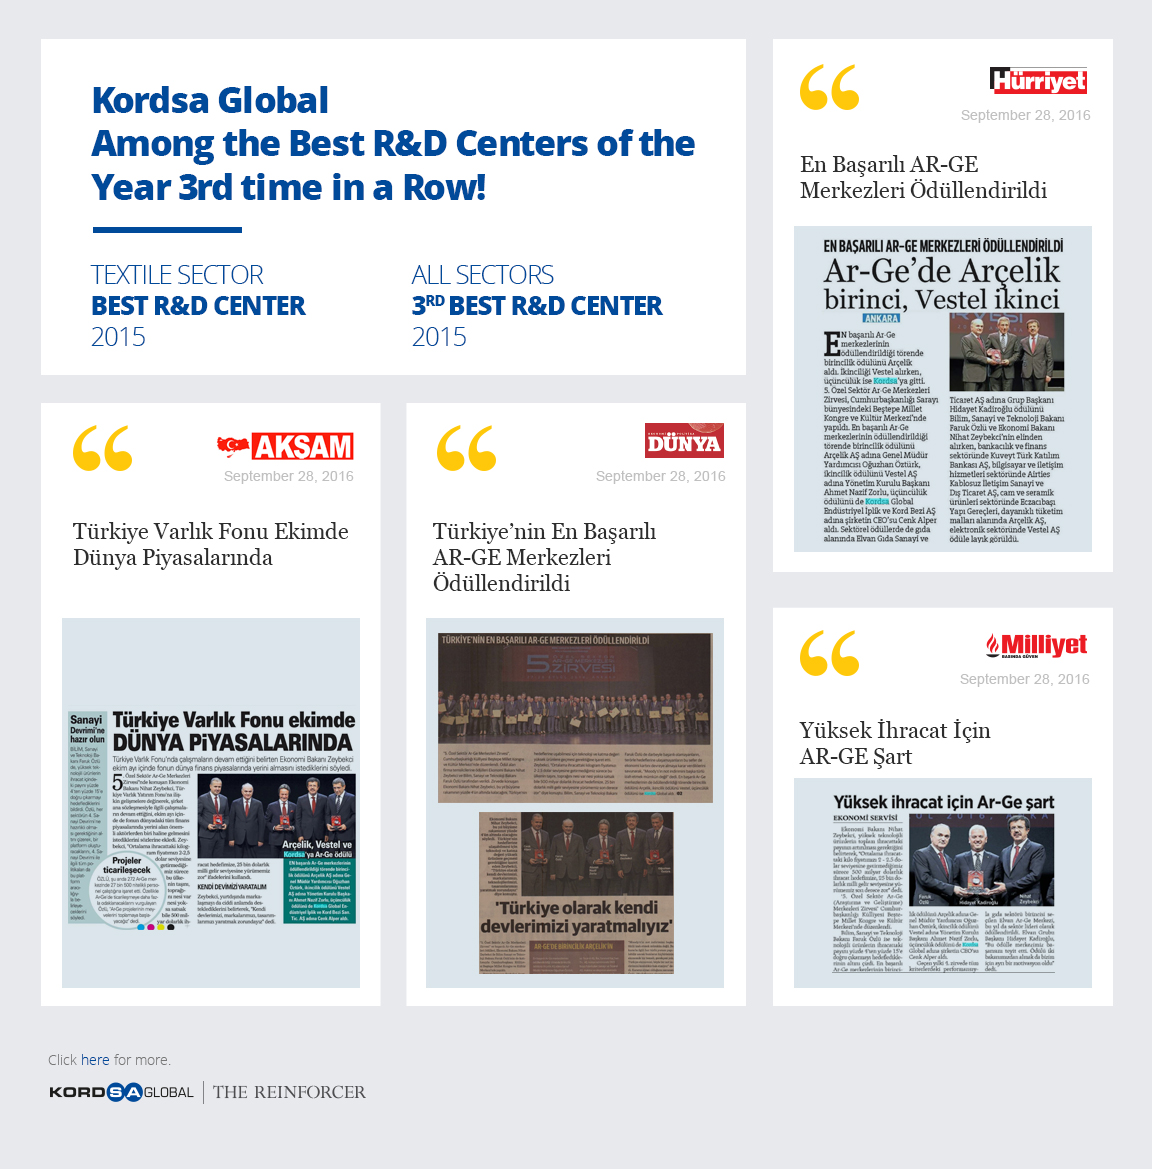 Among the Best R&D Centers of the Year 3rd time in a Row!